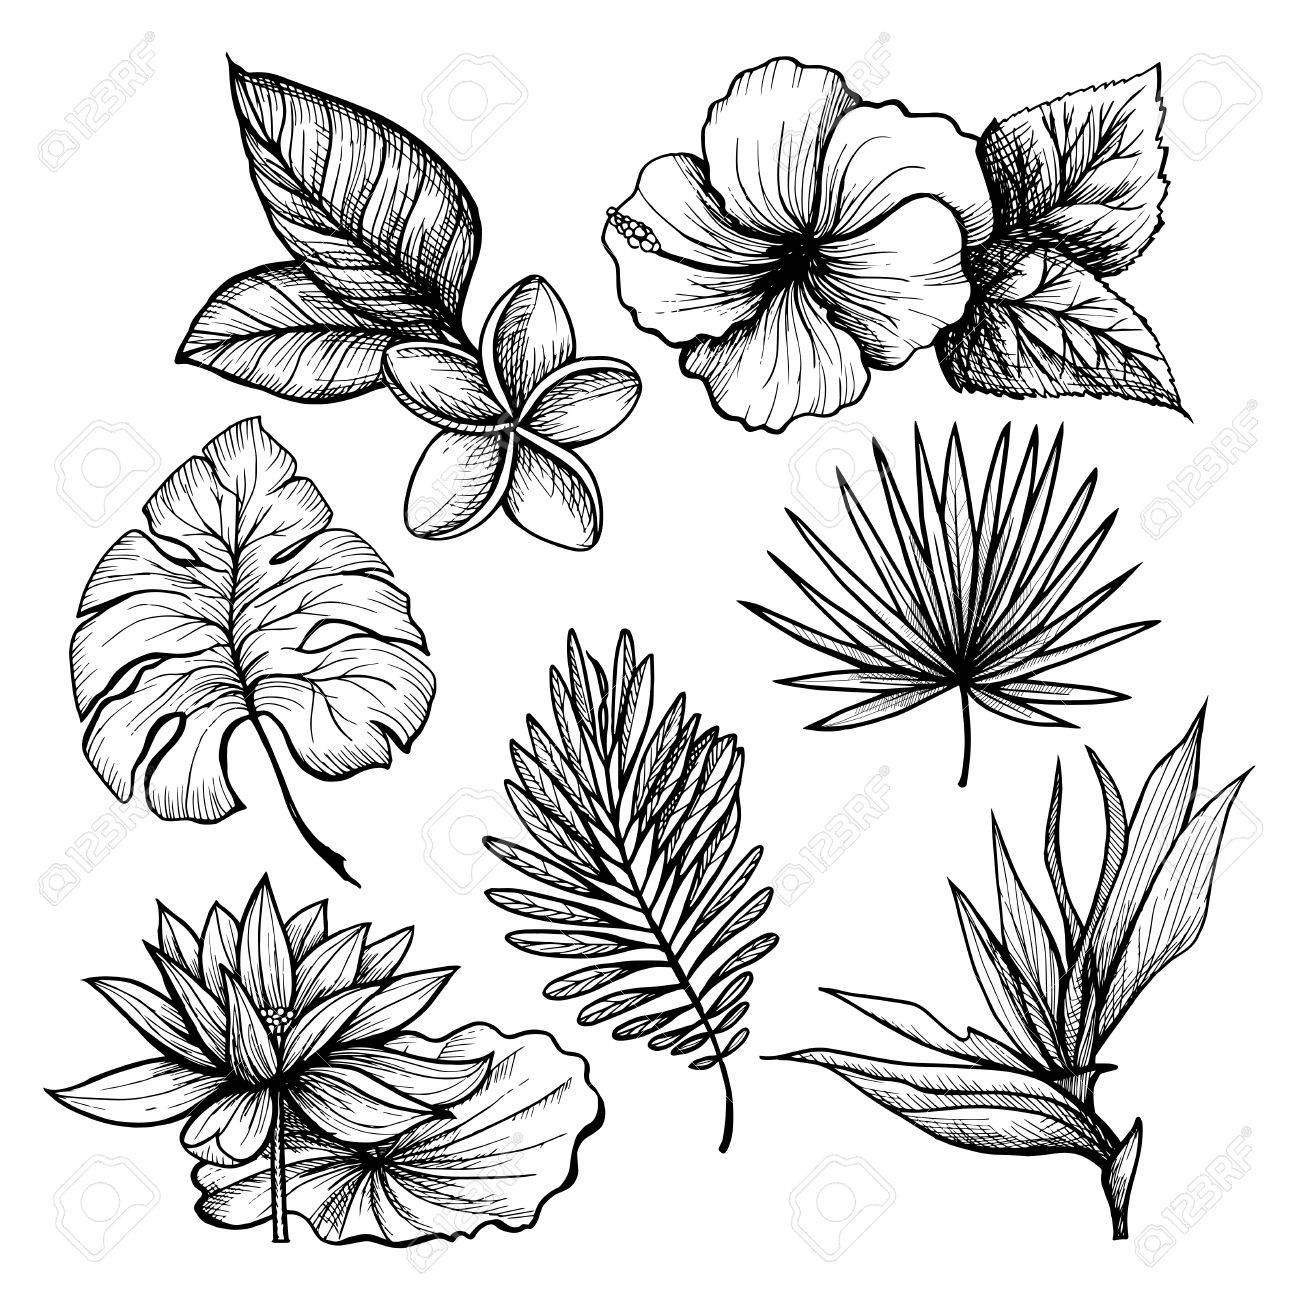 1299x1300 Black And White Hand Drawn Tropical Leaves And Flowers Set